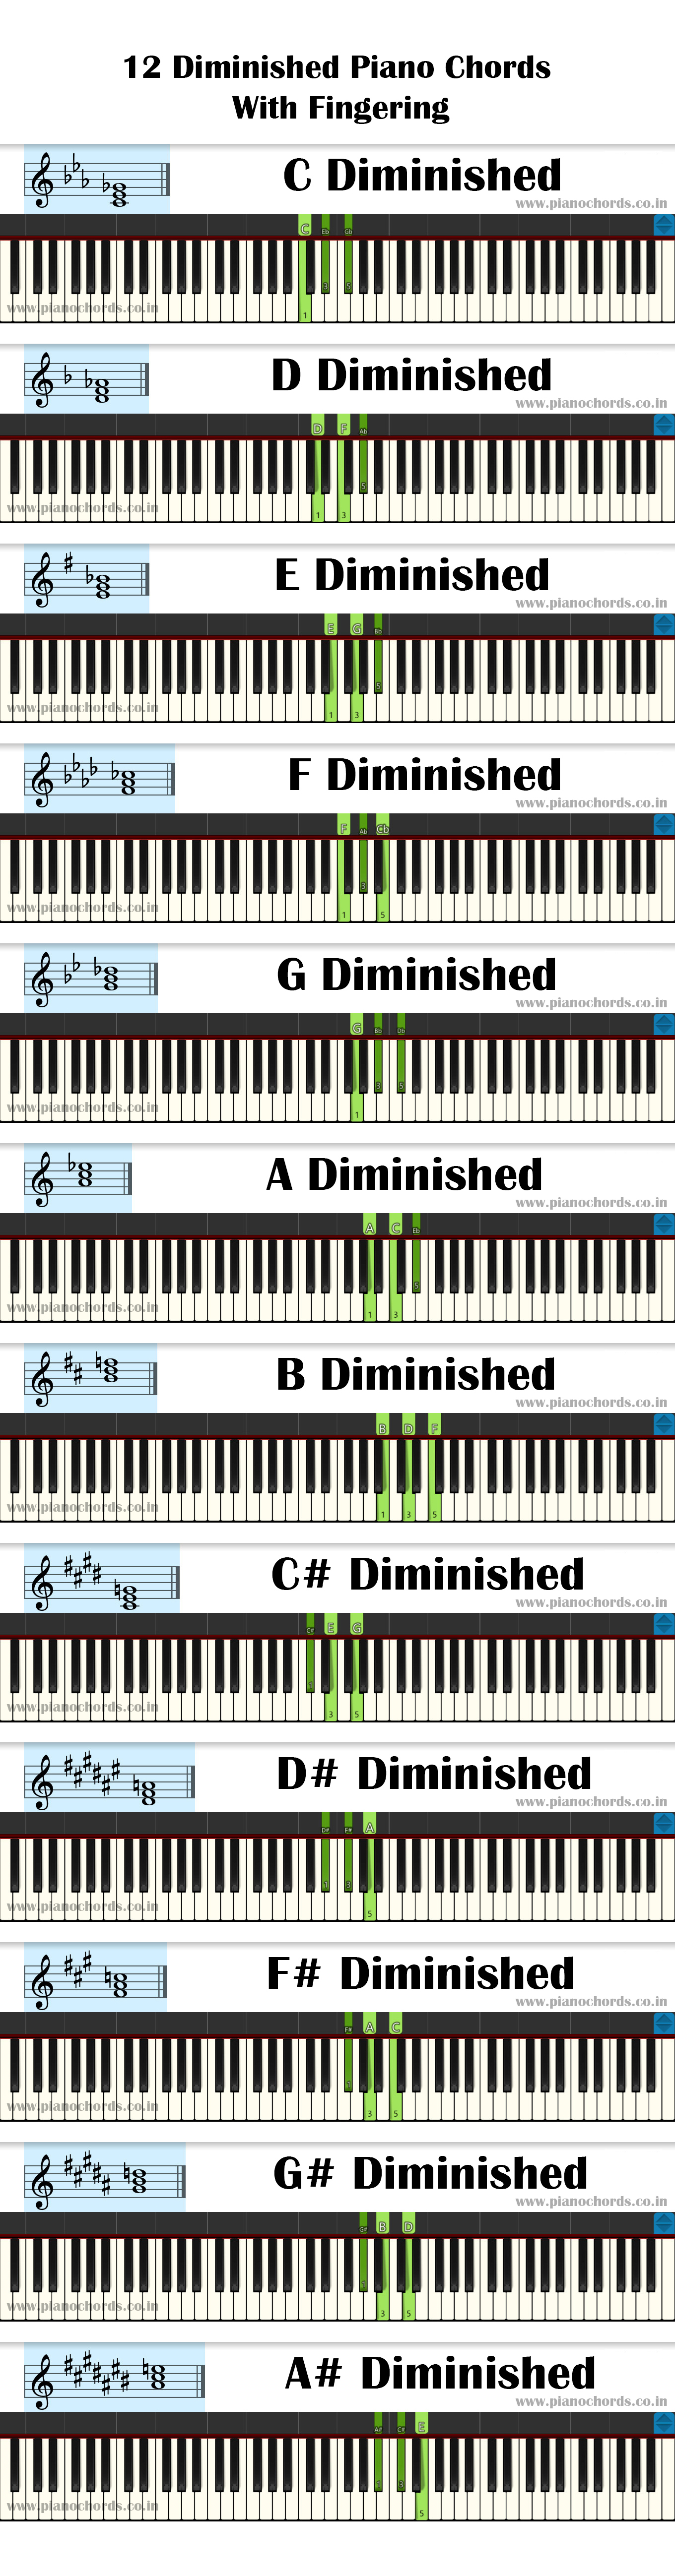 12 Diminished Piano Chords With Fingering, Diagram, Staff Notation